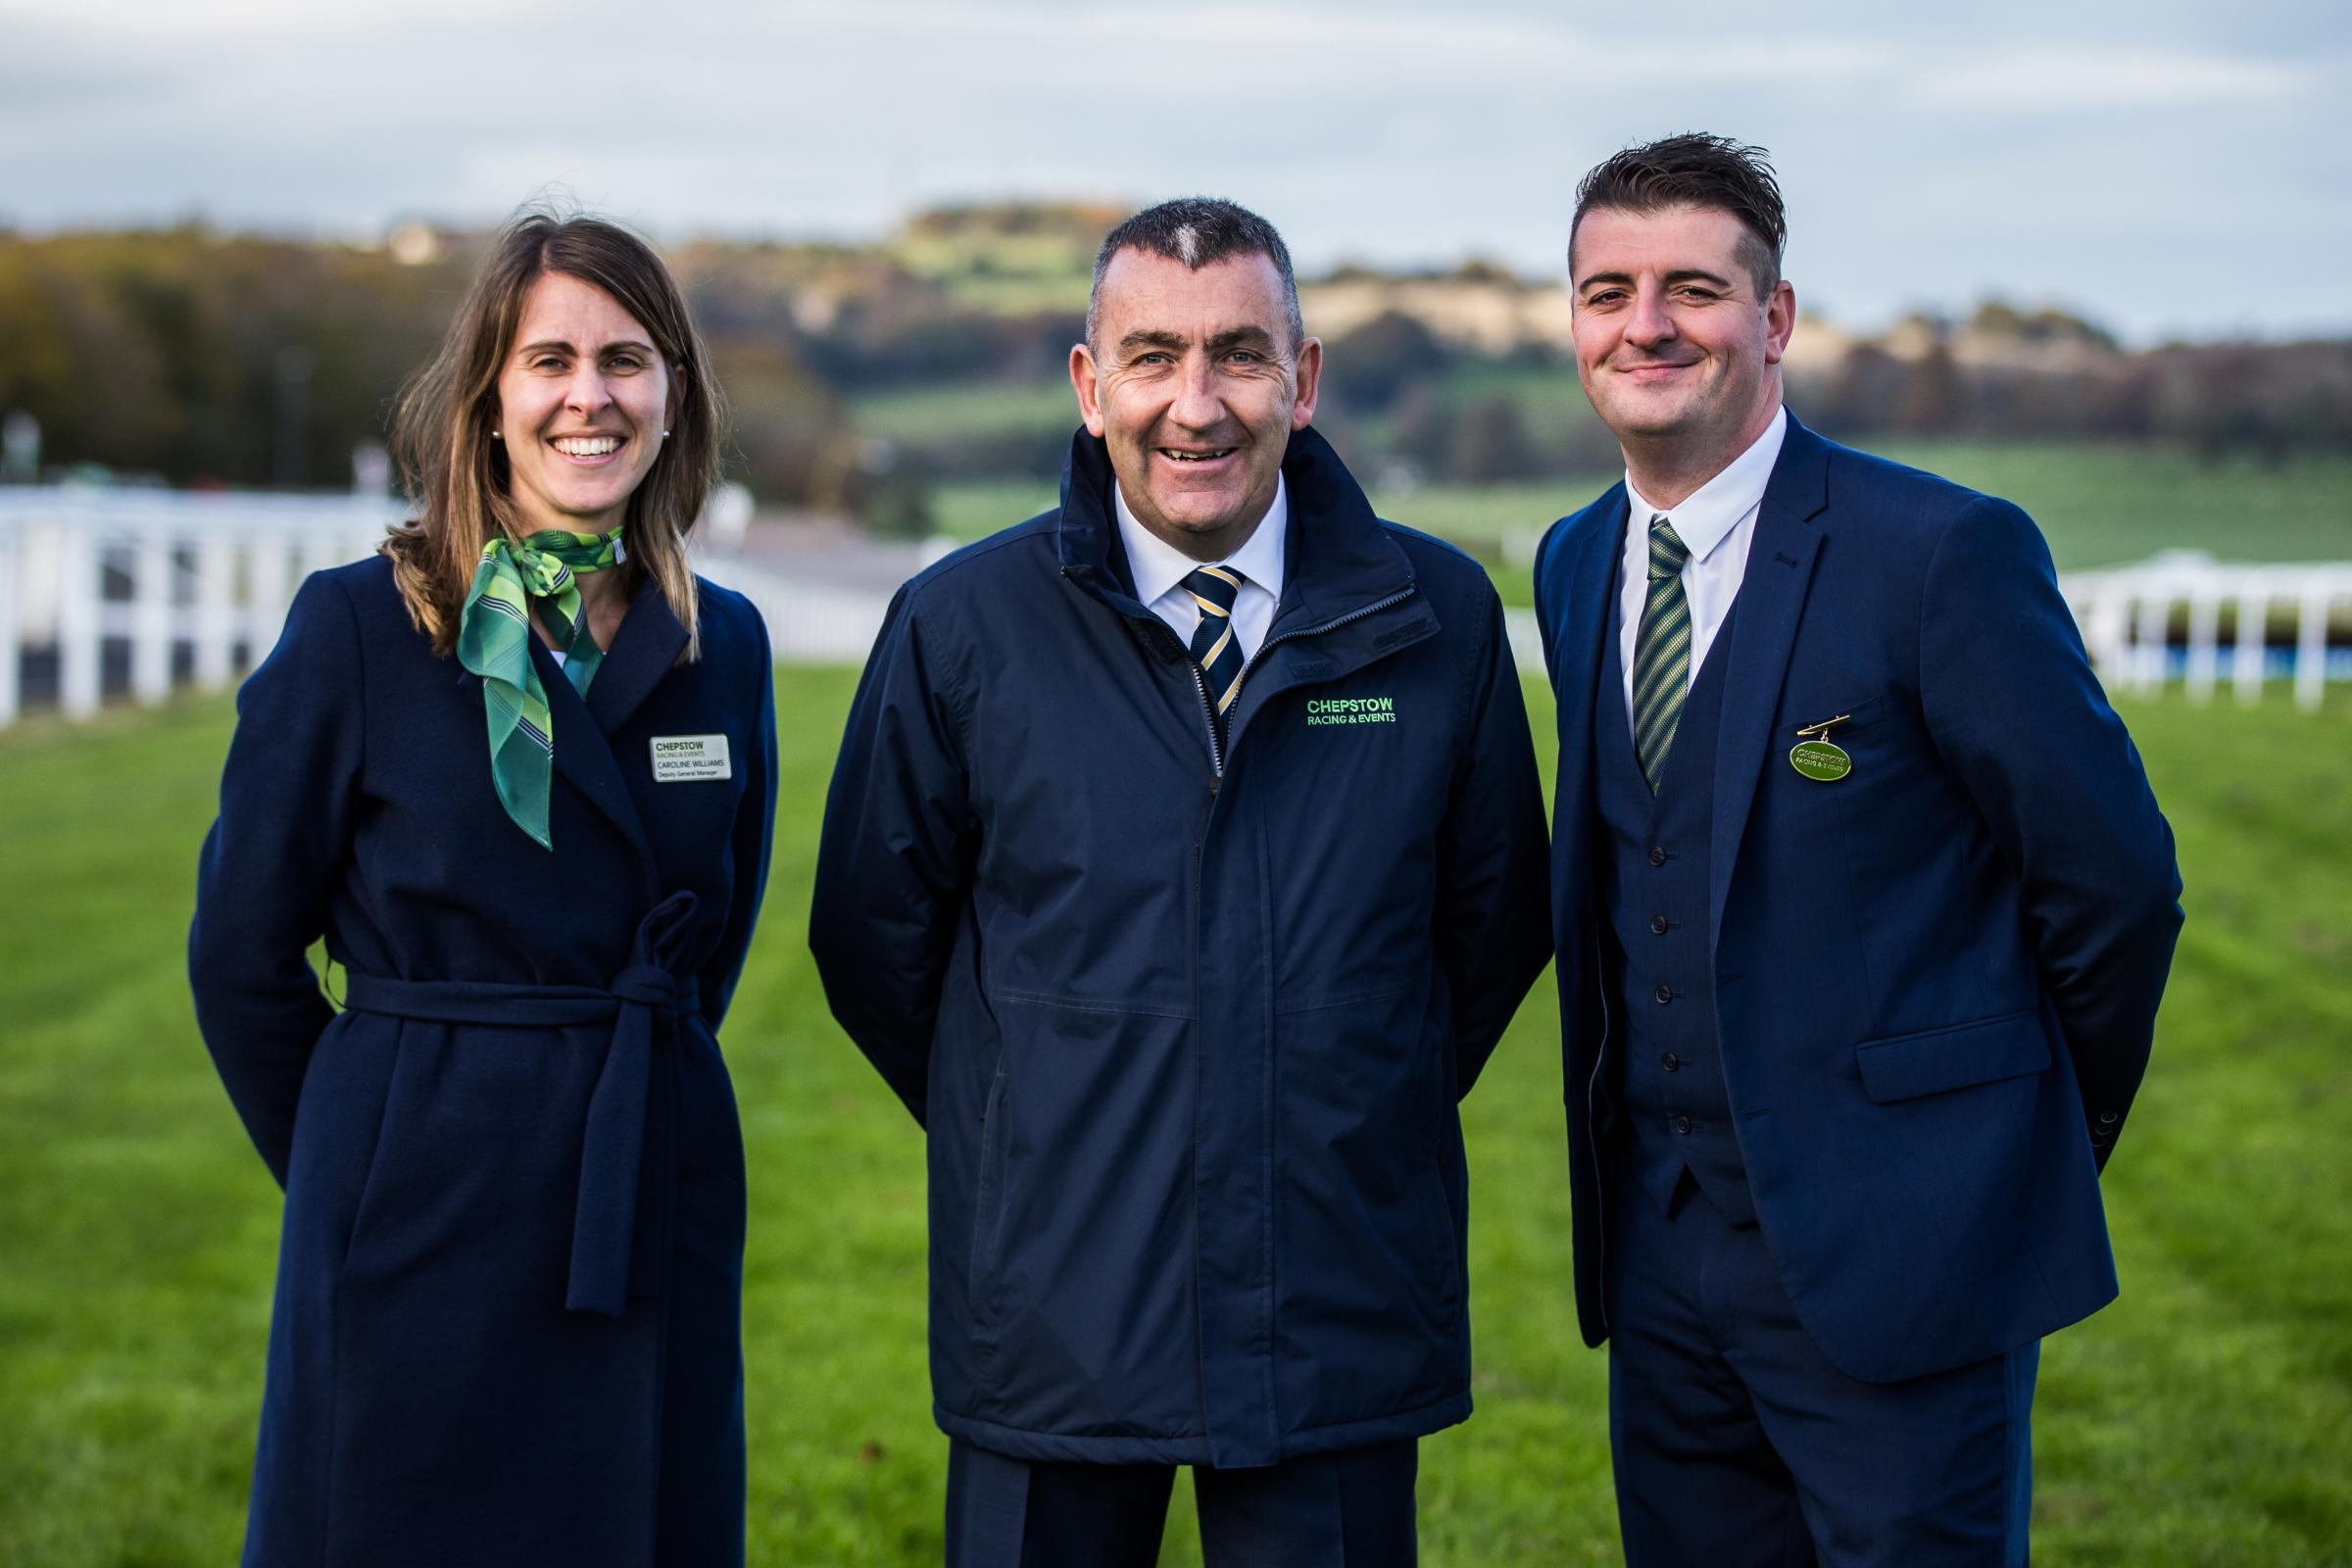 Caroline Williams, General Manager at Chepstow, Phil Bell, Executive Director and Simon Rowlands, General Manager at Ffos Las